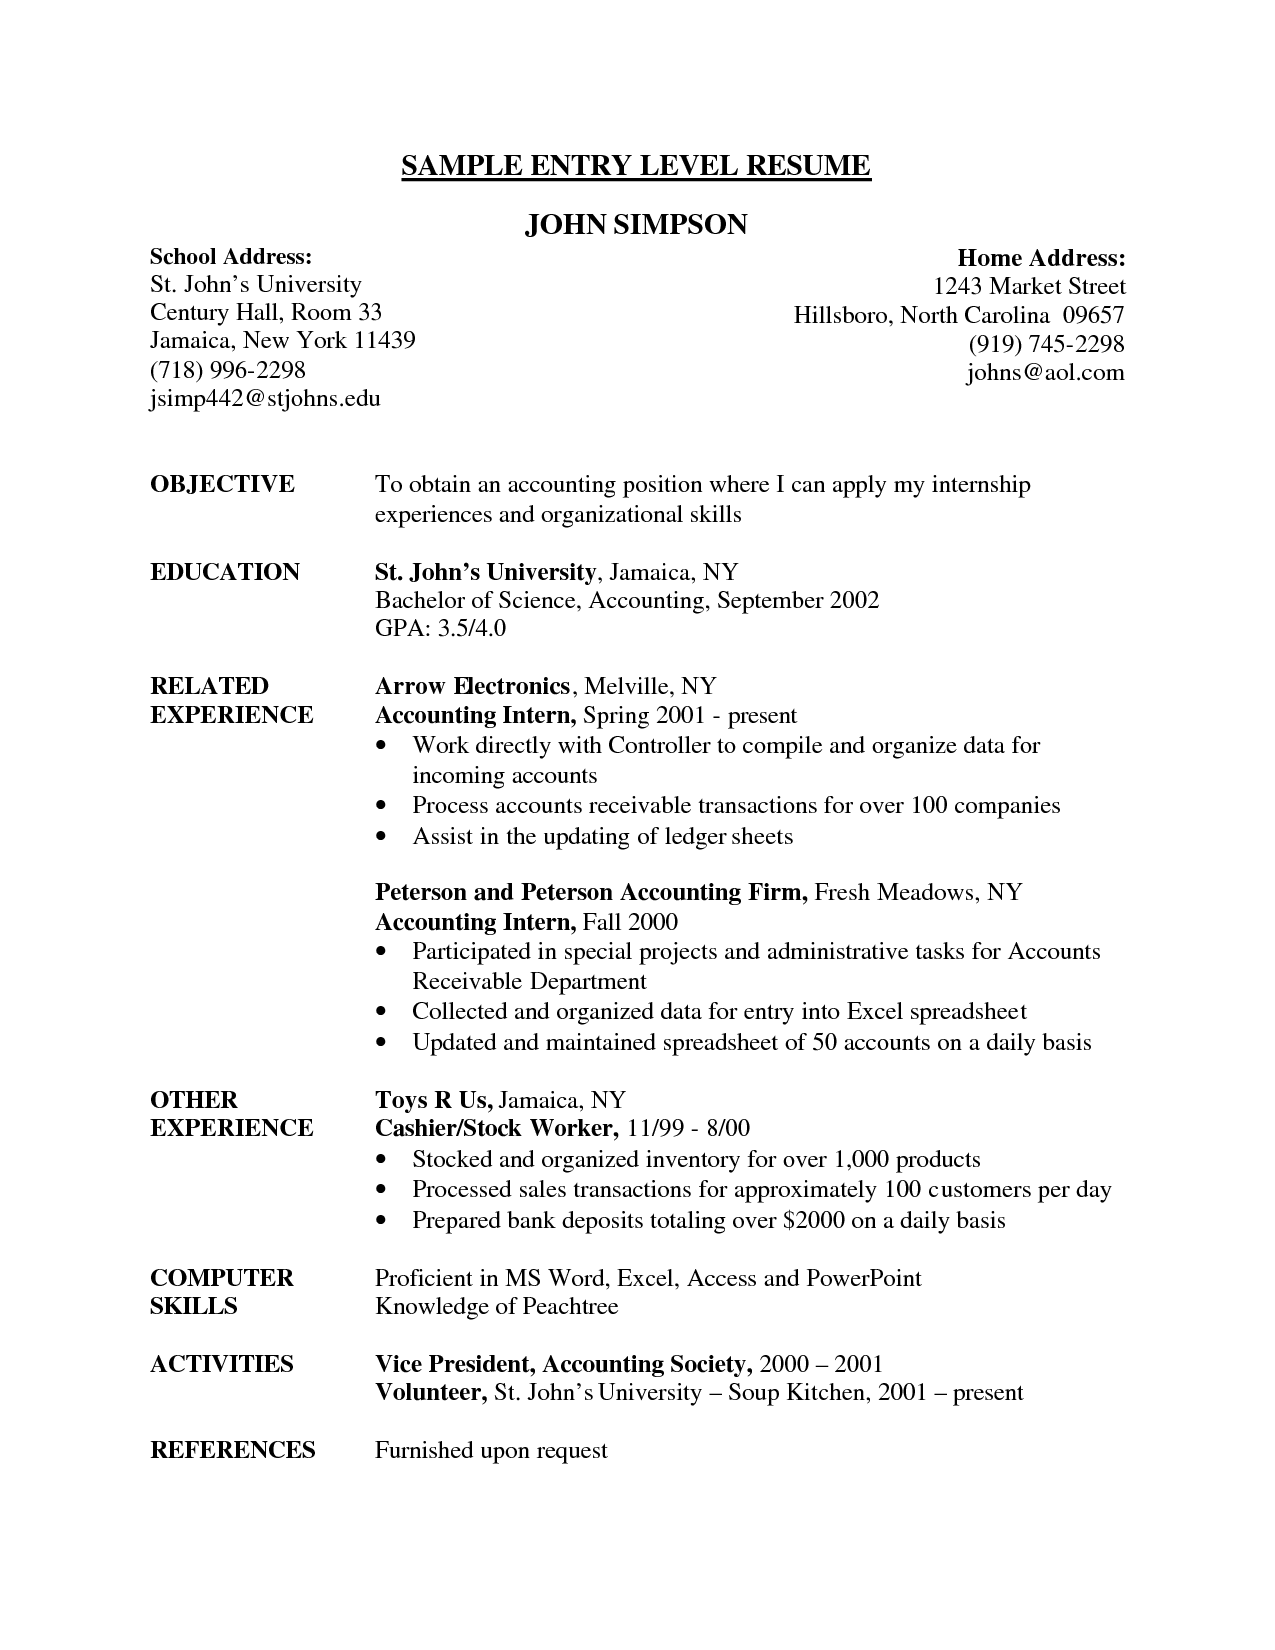 controller functional resume sample admin assistant example controller functional resume sample admin assistant example administrative examples job description example resume profile entry level